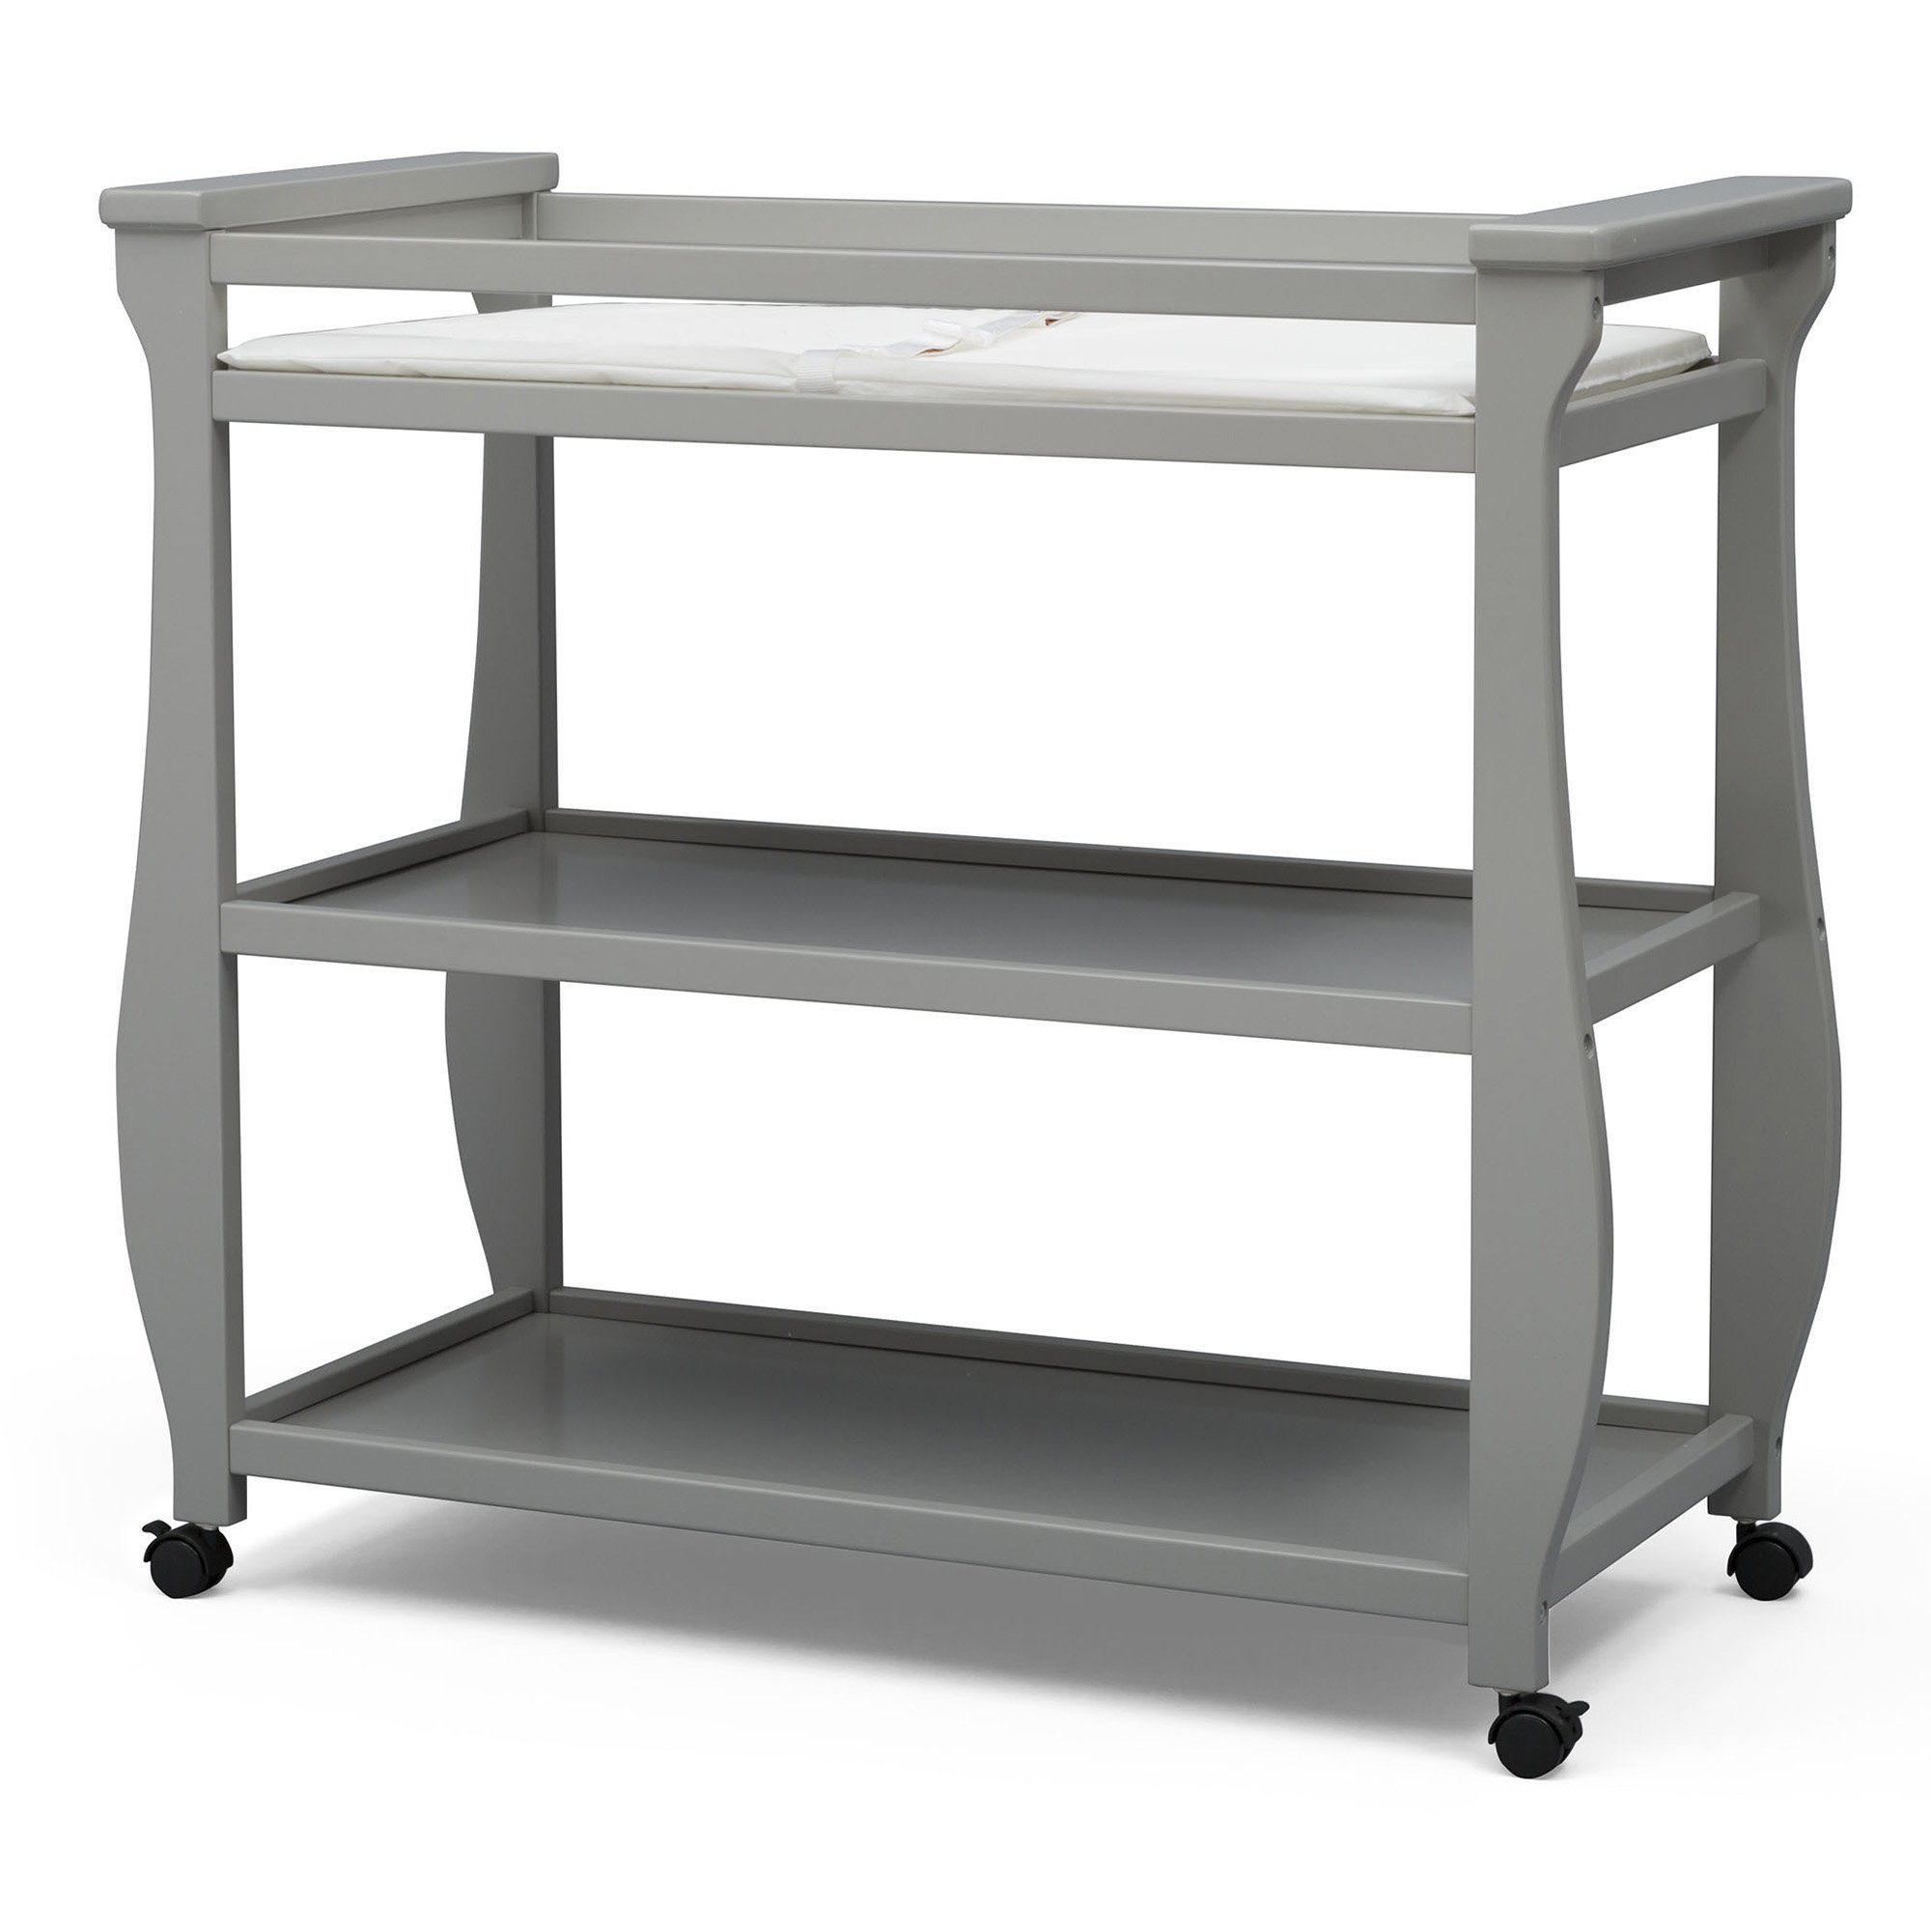 Delta Children Lancaster Changing Table, Grey by Delta Children (Image #1)